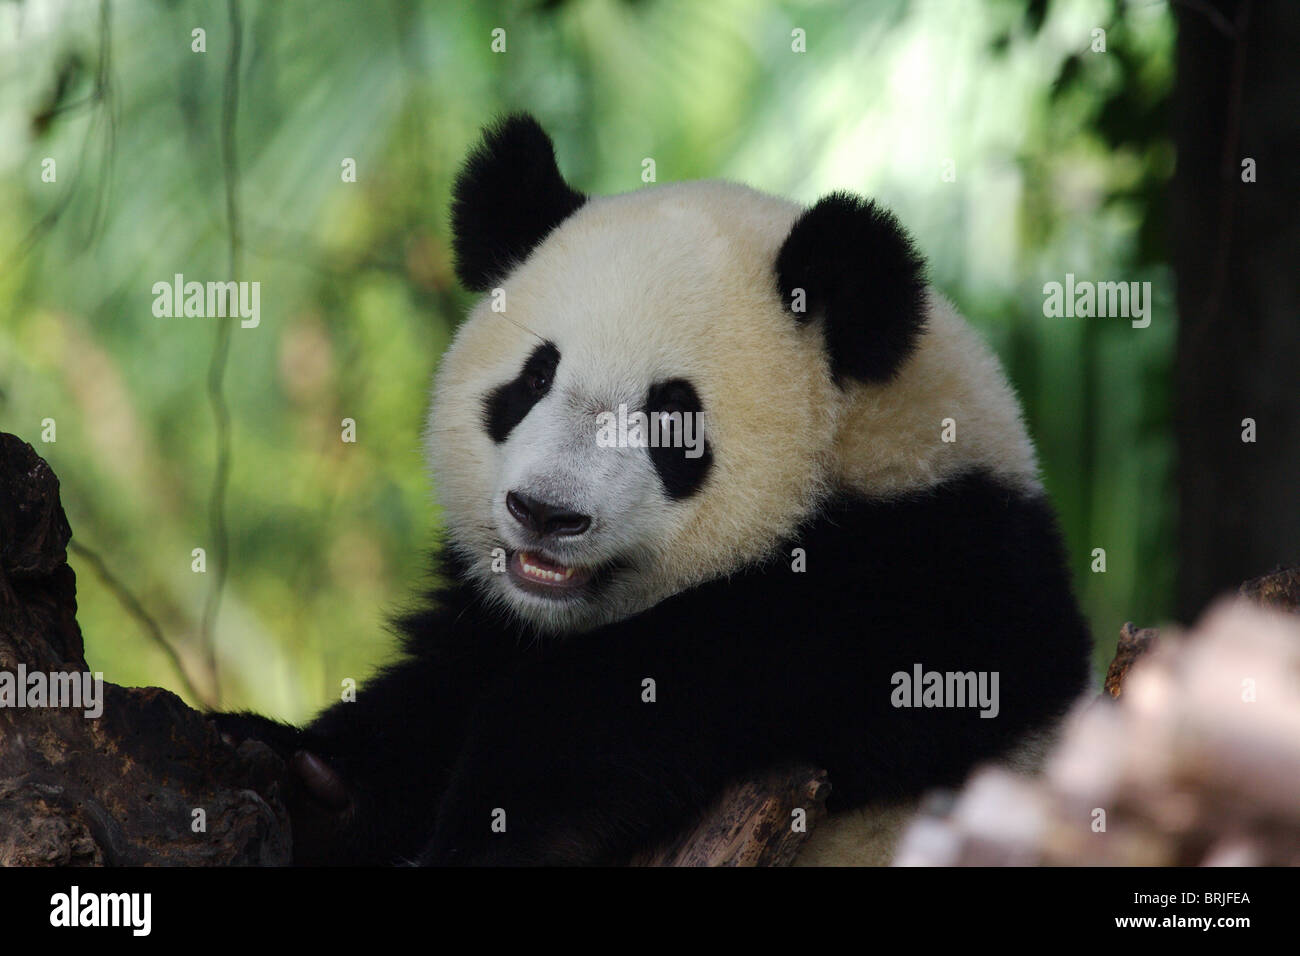 Giant Panda in Chengdu Panda Base, China - Stock Image